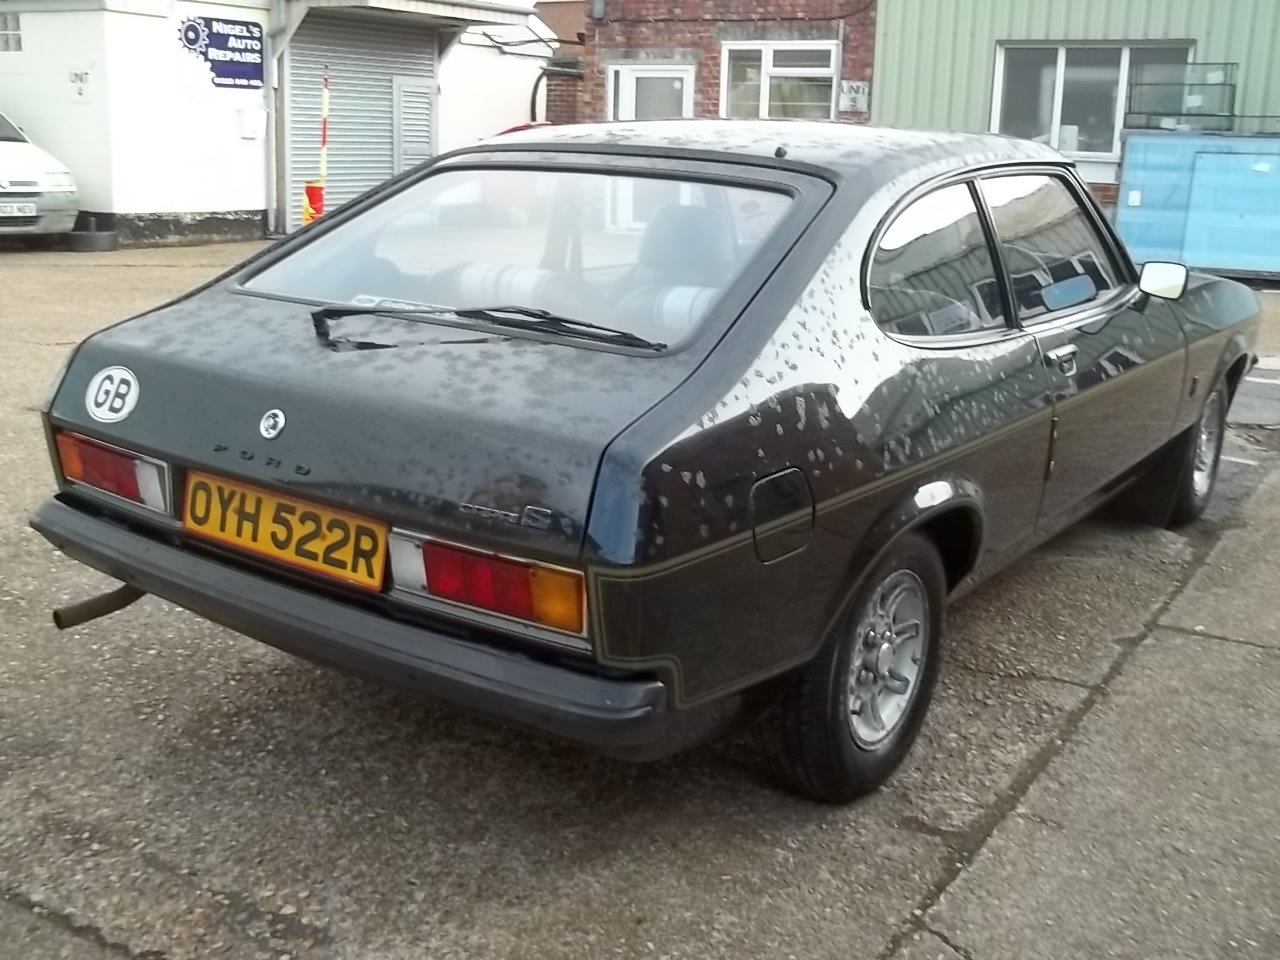 1977 Ford Capri 2.0S 1 owner from new SOLD (picture 2 of 6)